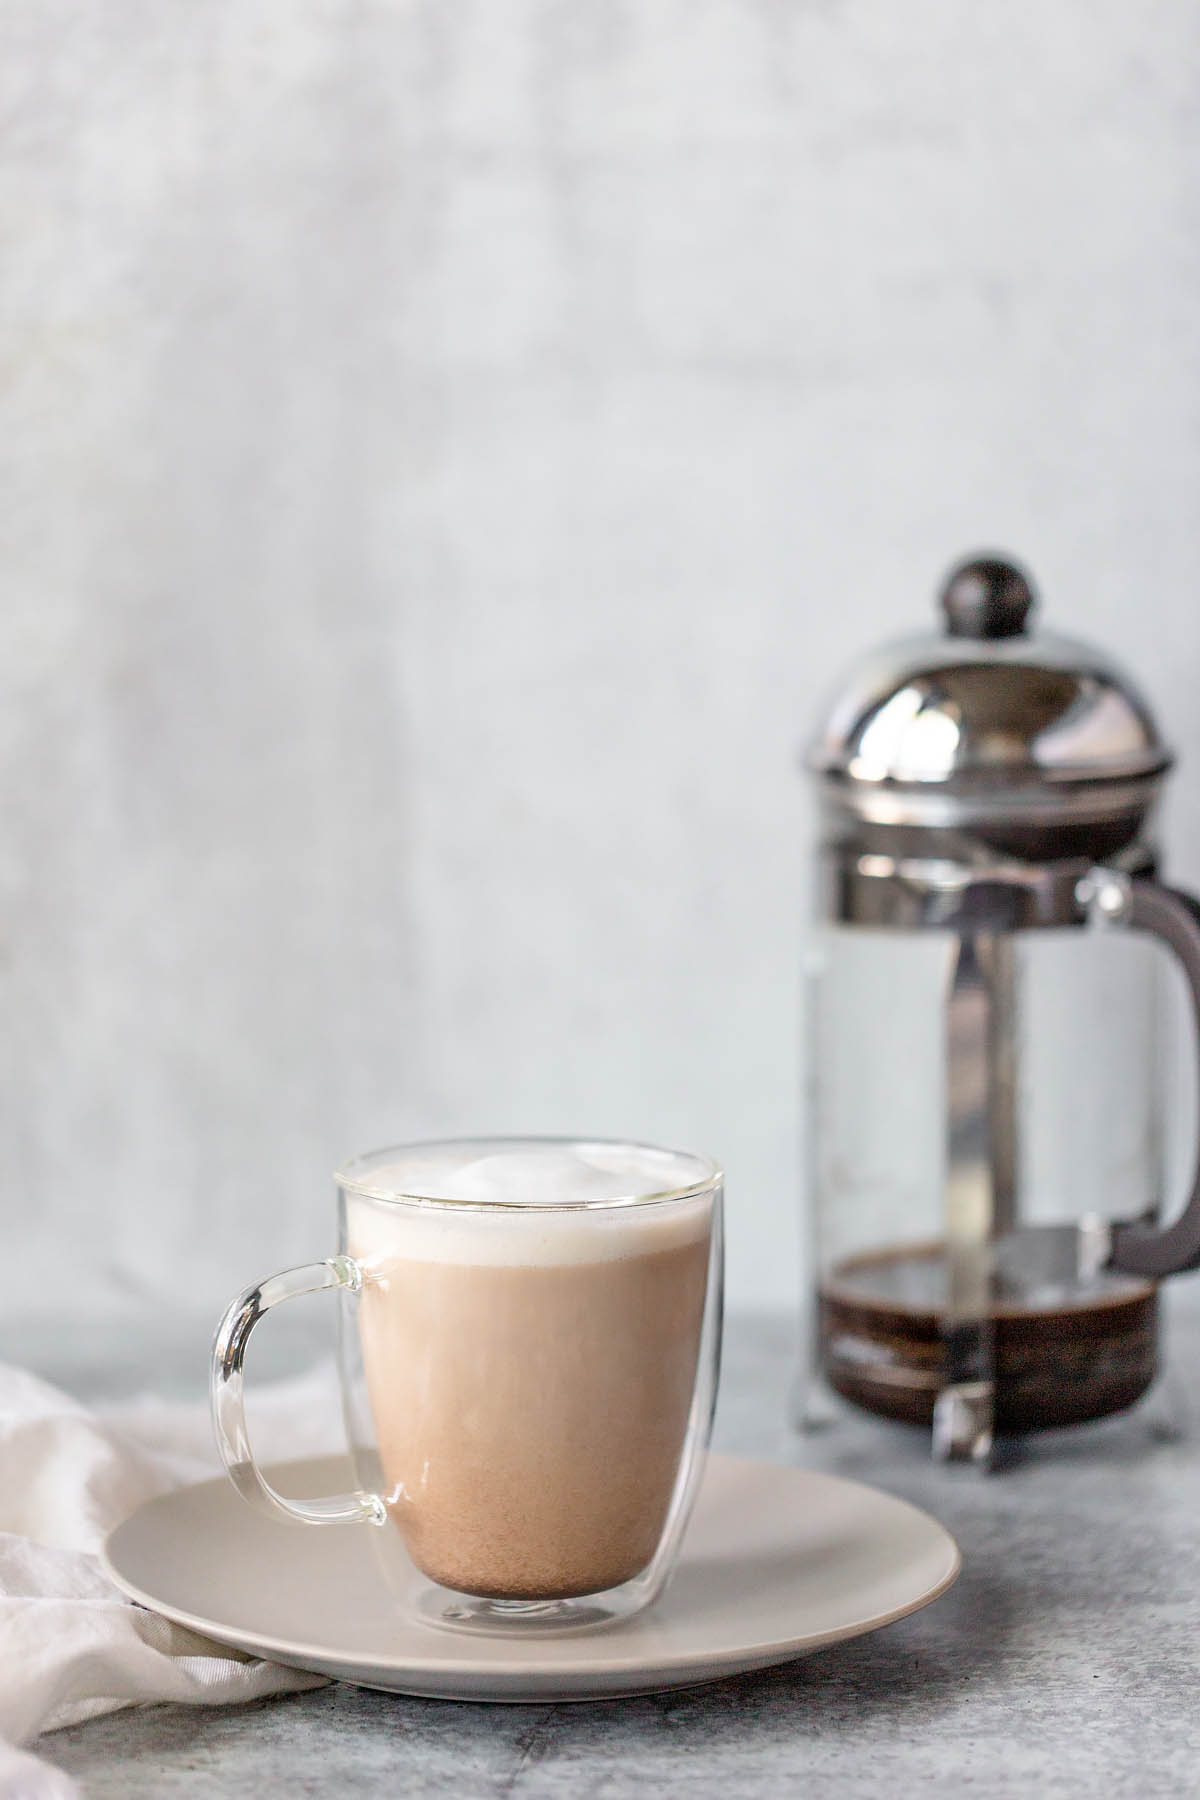 french press latte in a glass mug